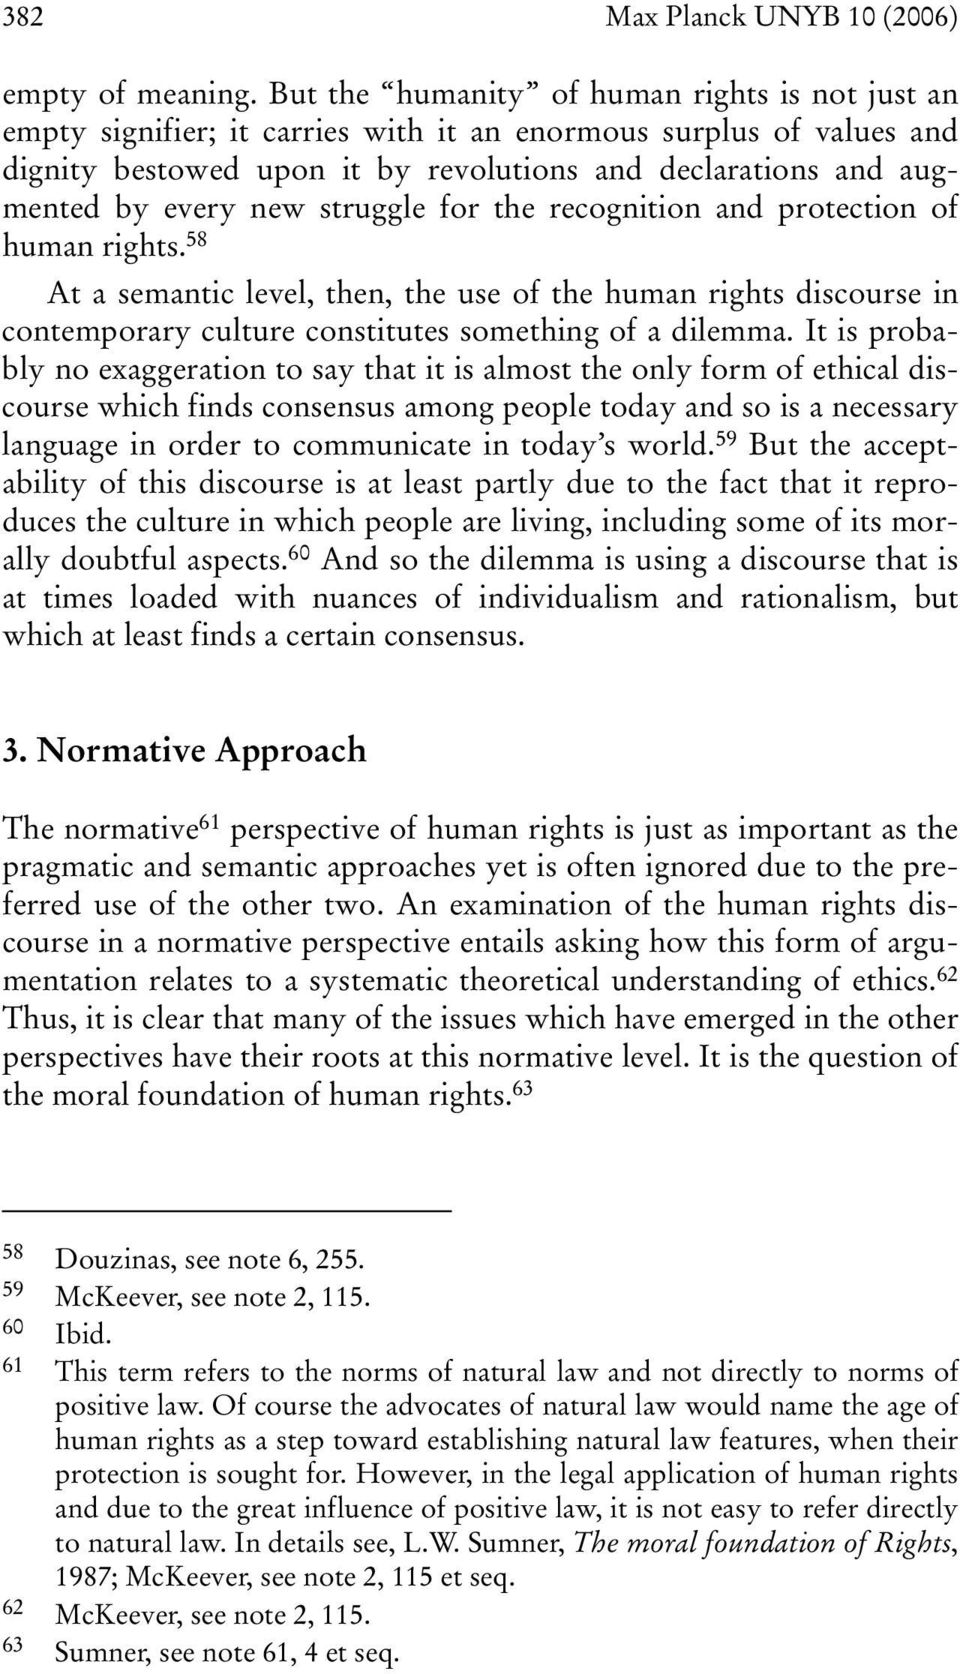 new struggle for the recognition and protection of human rights. 58 At a semantic level, then, the use of the human rights discourse in contemporary culture constitutes something of a dilemma.